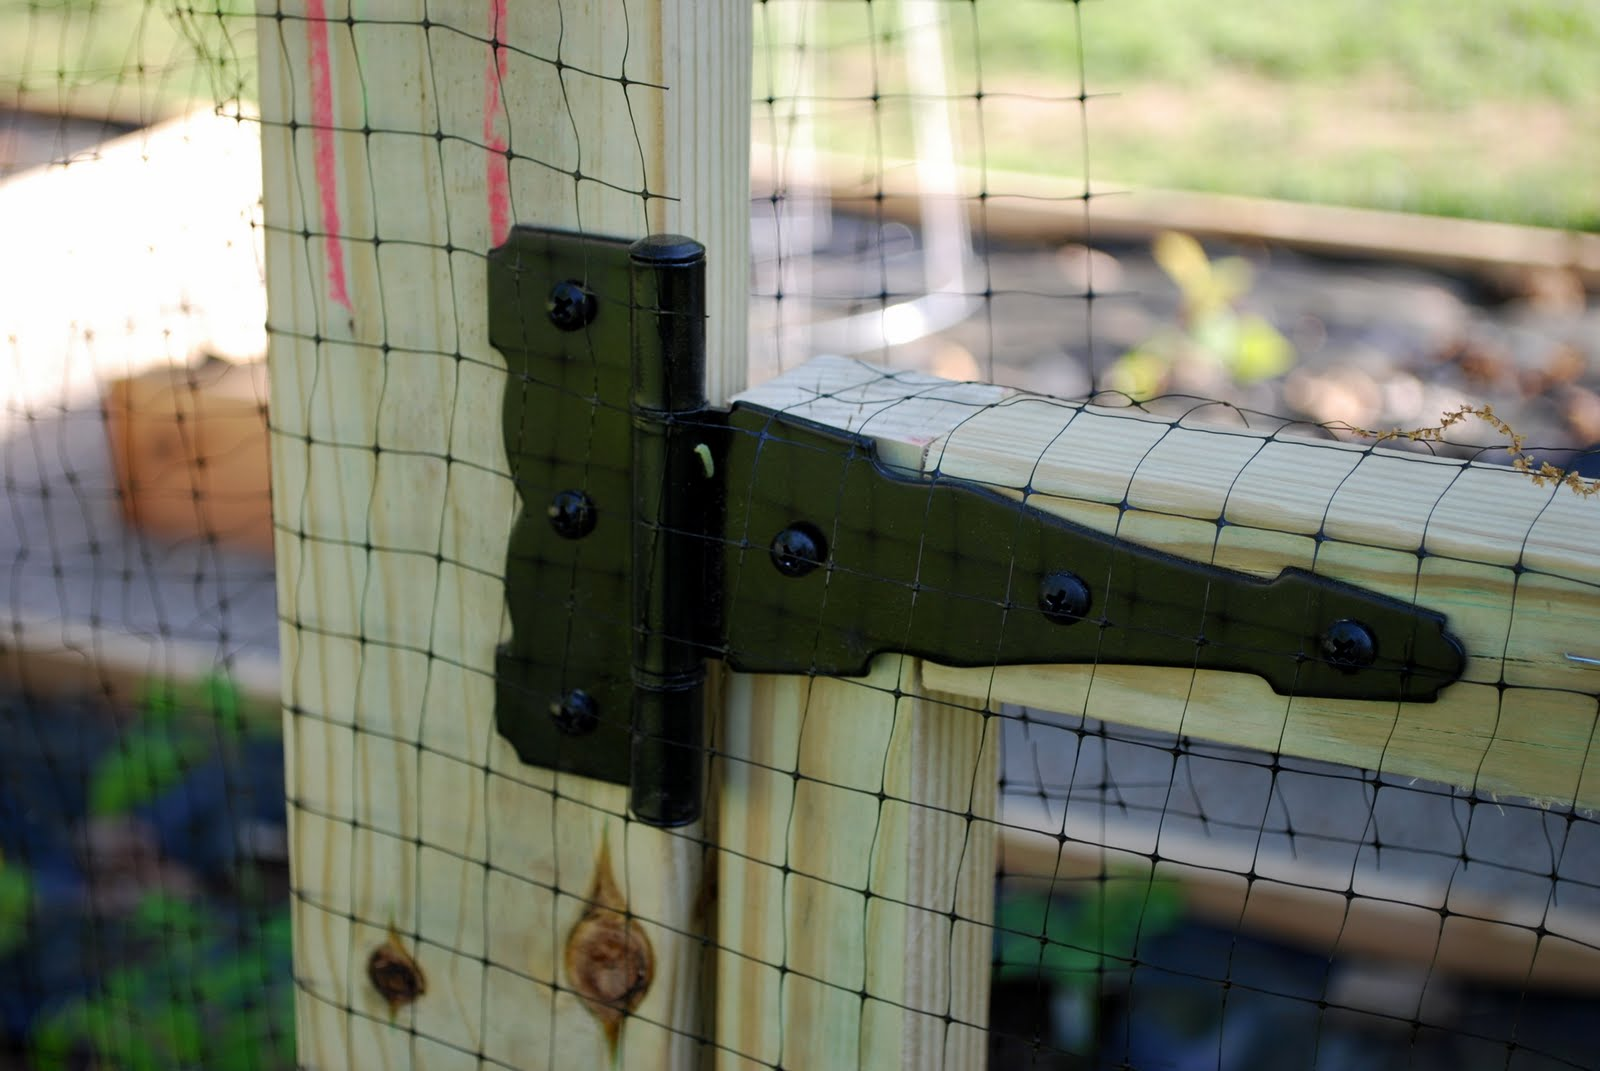 Mike attached the gate door to the posts with simple hinges from Home